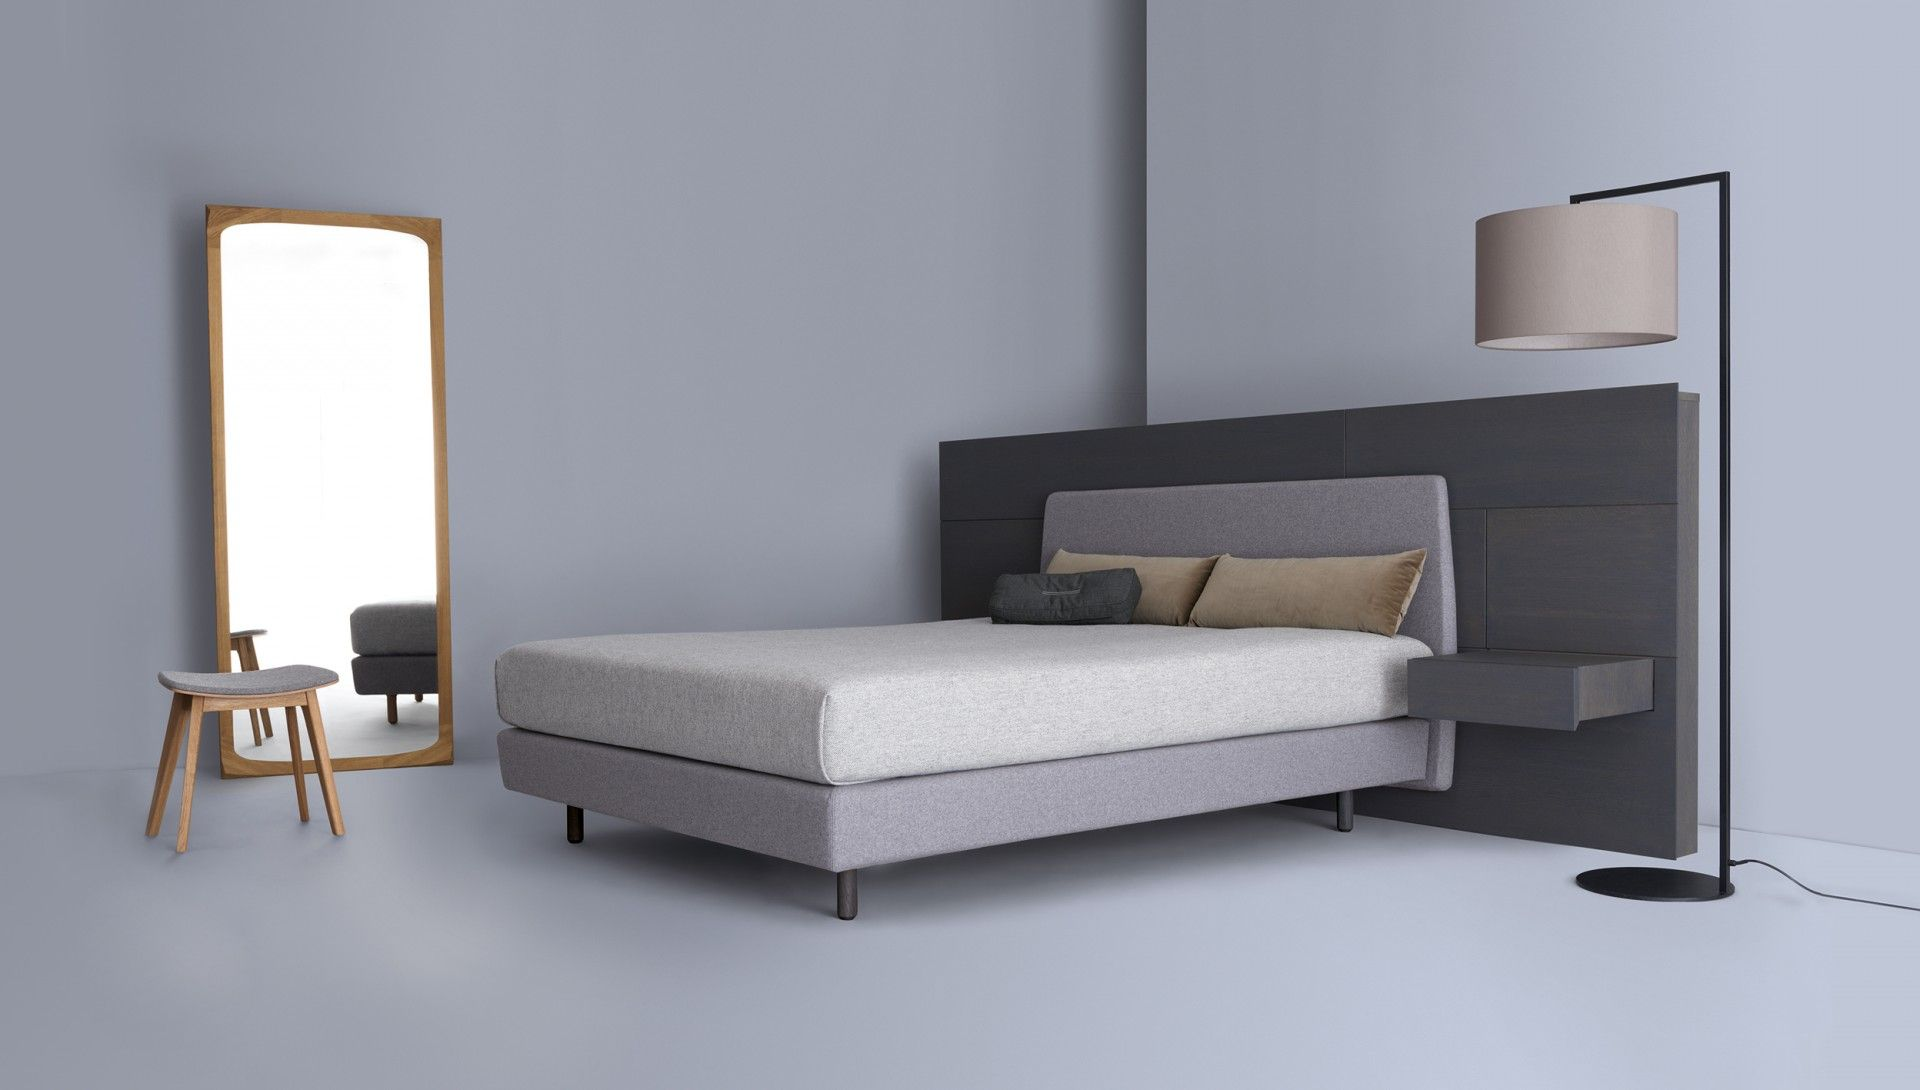 modern bedroom handmade in germany by zeitraum, available in la at, Schlafzimmer entwurf